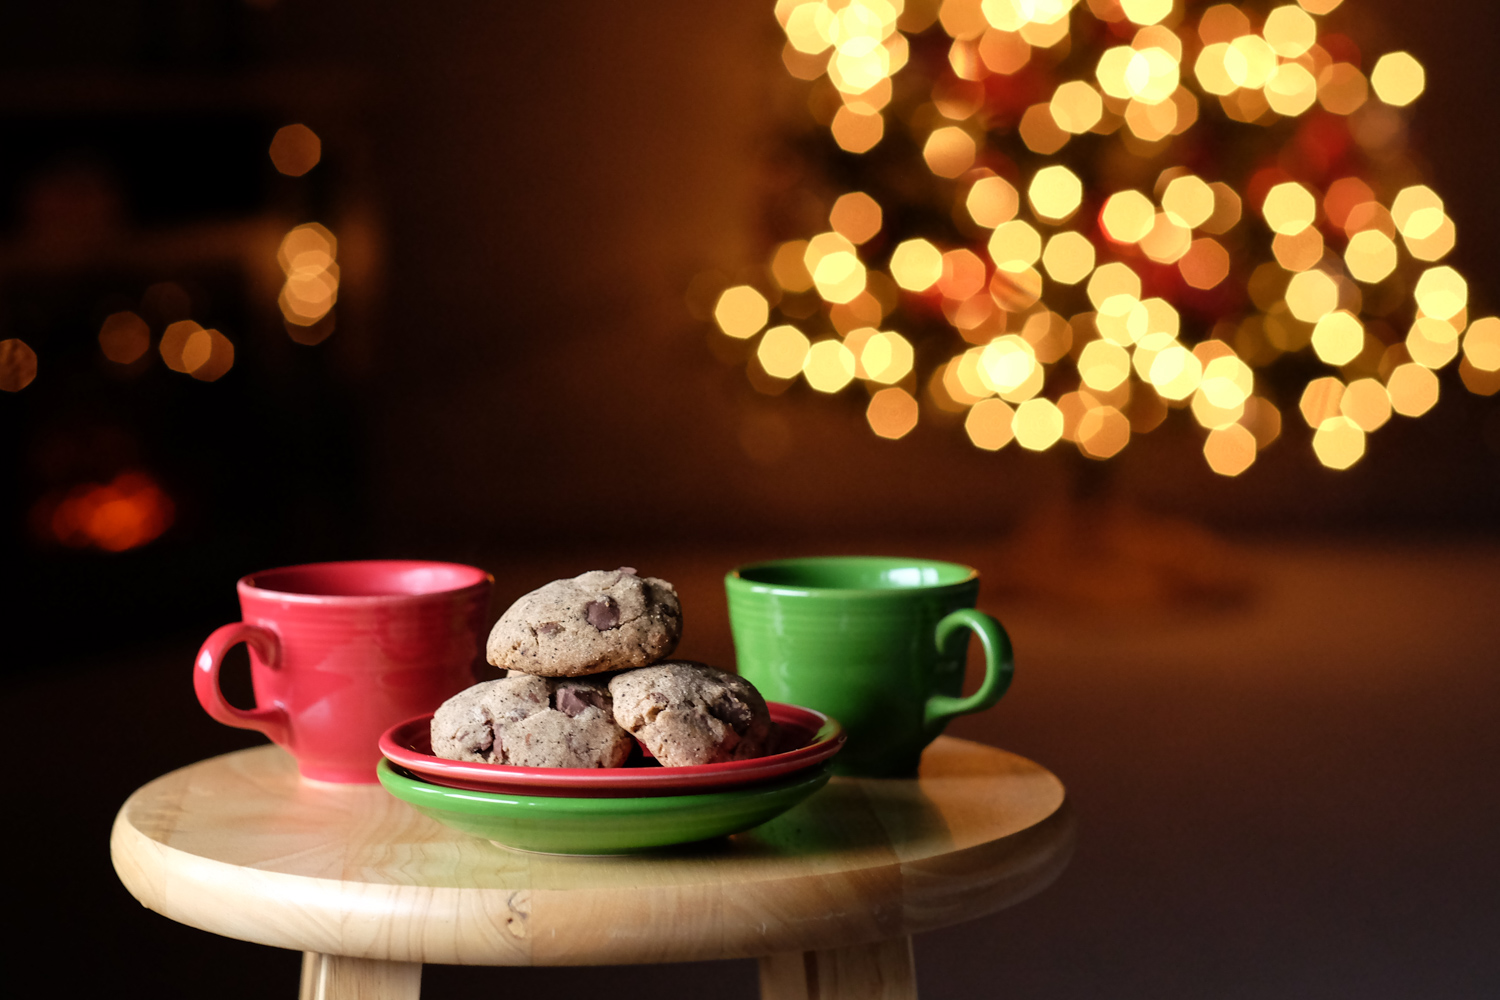 14 - How to Take Great Food Photos this Holiday Season